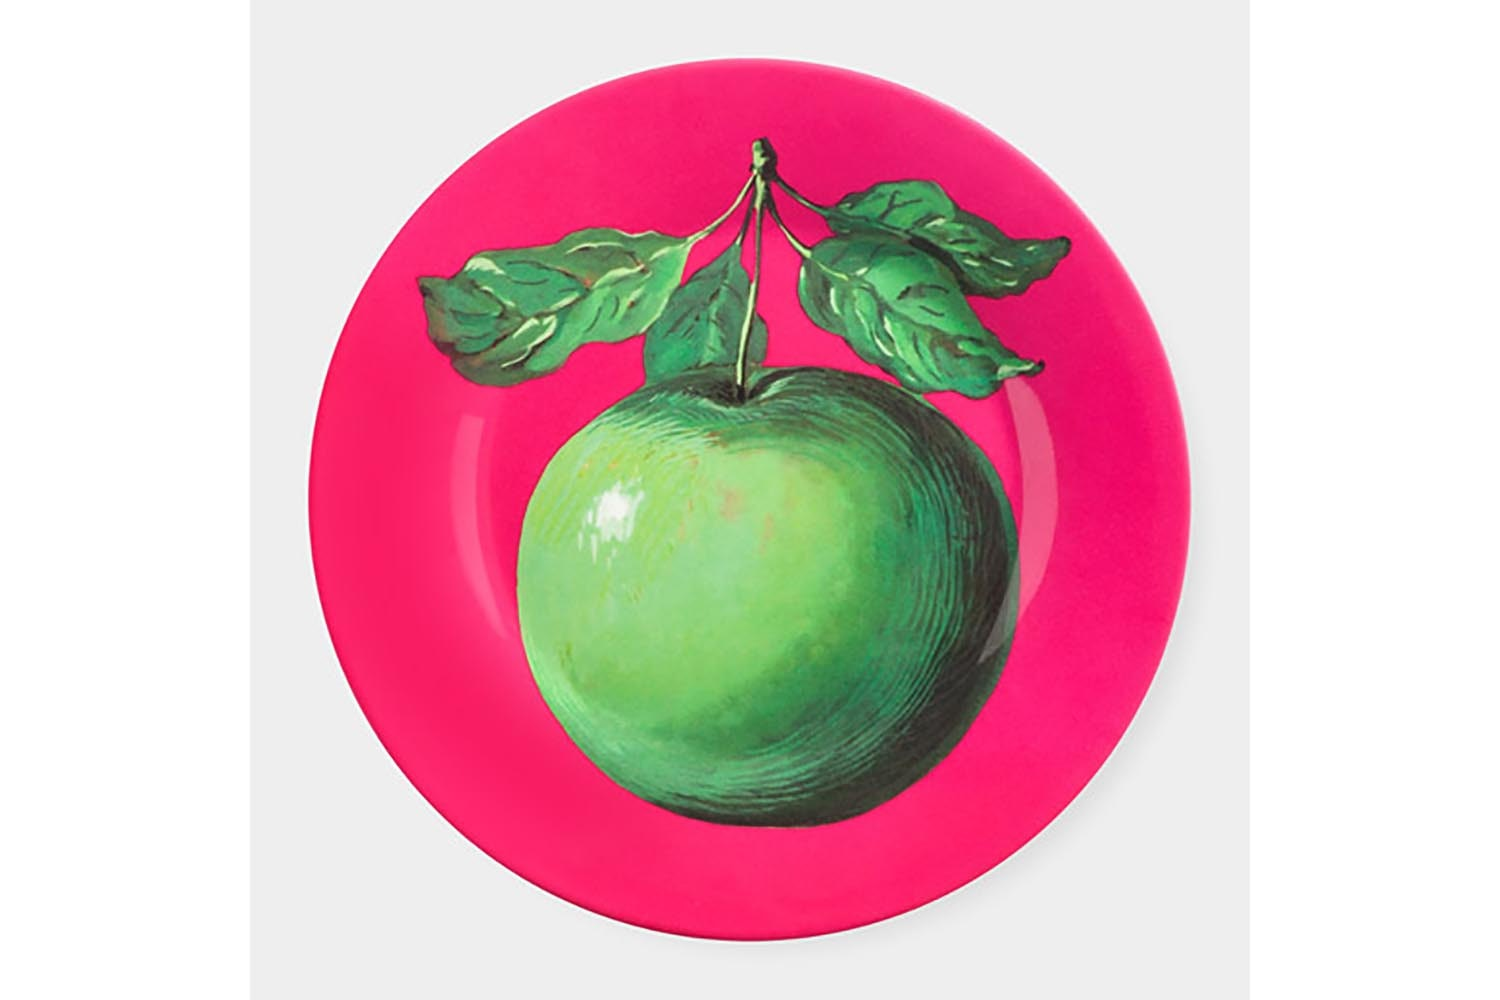 Magritte: Apple Plate by Rene Magritte for MoMA